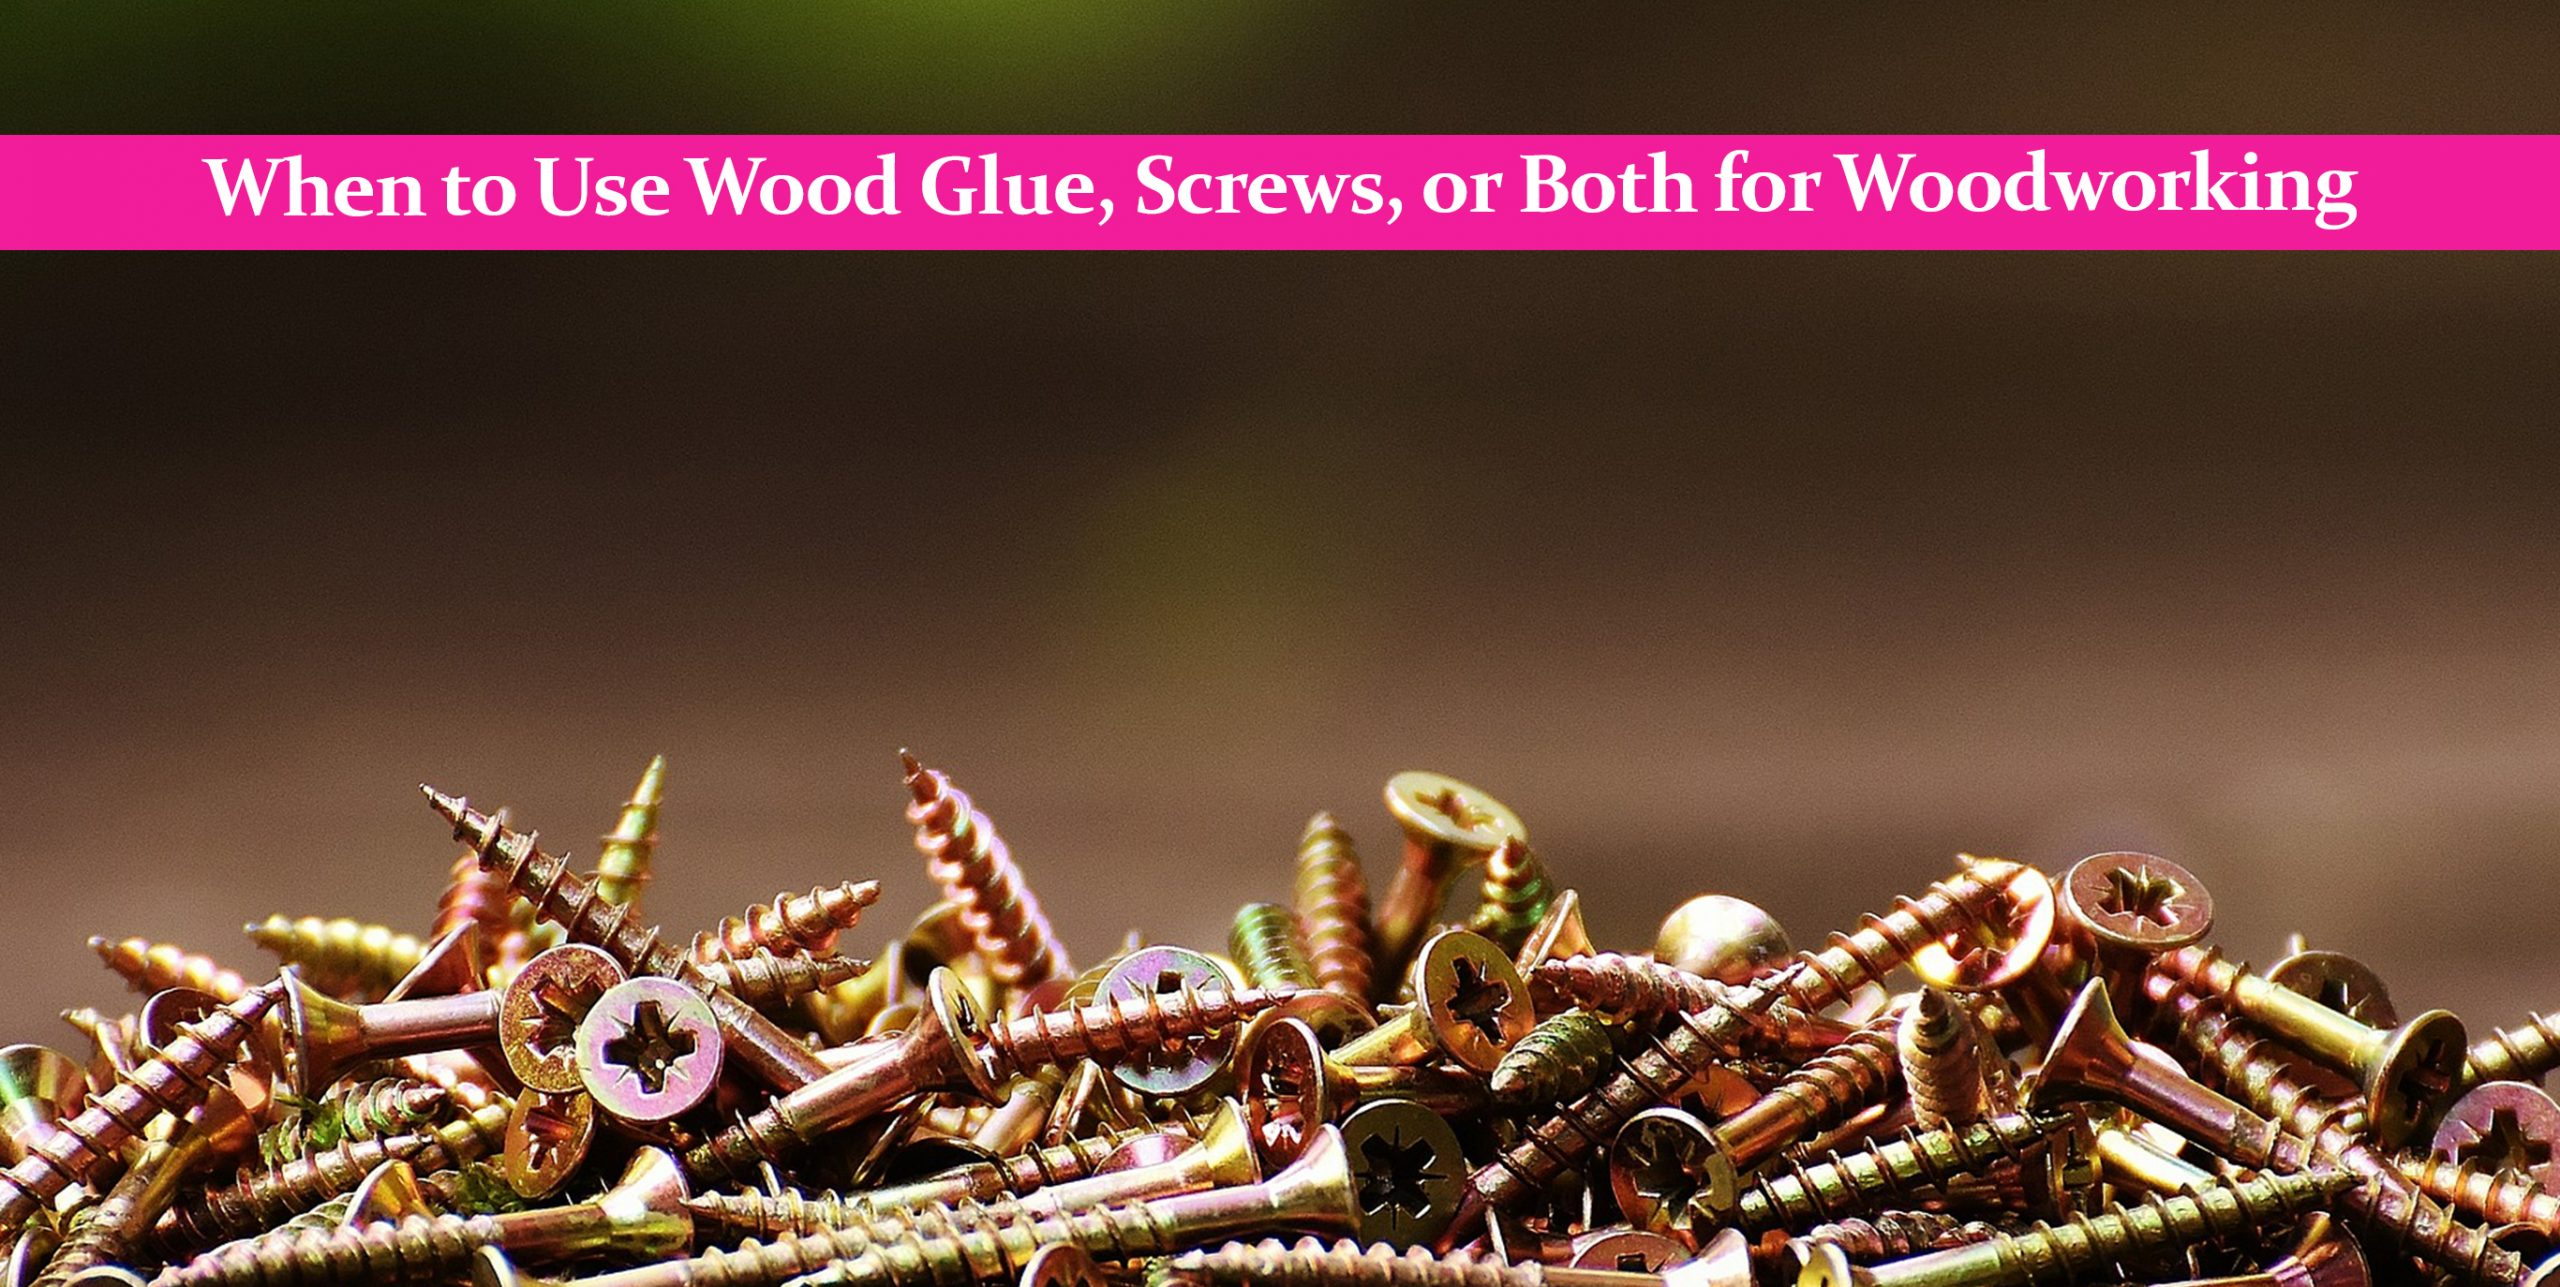 When to Use Wood Glue, Screws, or Both for Woodworking